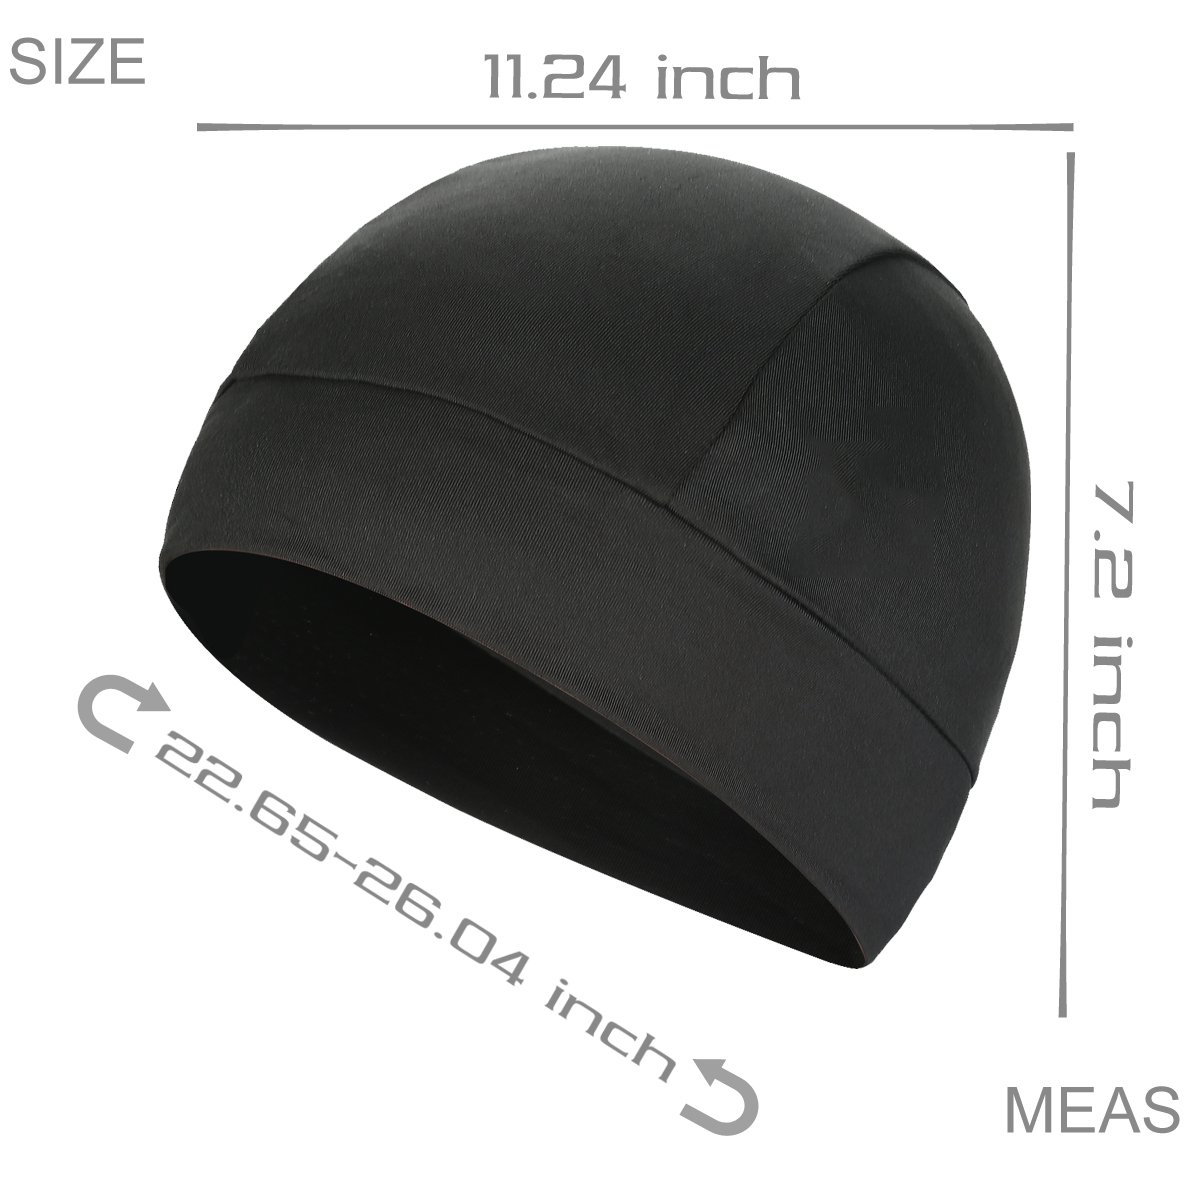 b8c64dec8d991 Amazon.com  JOEYOUNG Helmet Liner Skull Cap Running Beanie for Men   Women  Great for Motorcycling Cycling Running Football in Winter Cold Chilly Days   ...